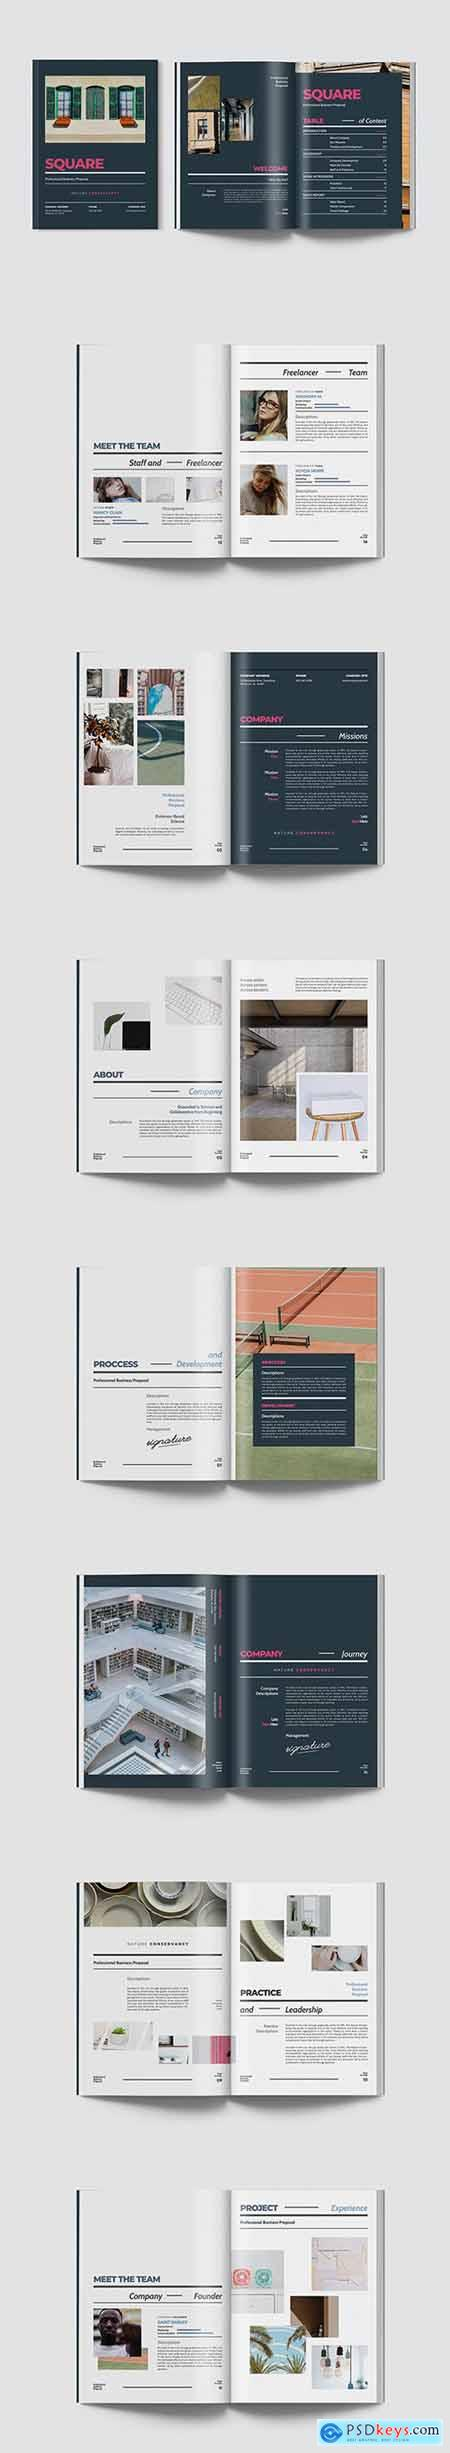 Square - Professional Business Proposal Indesign 2DF4BET